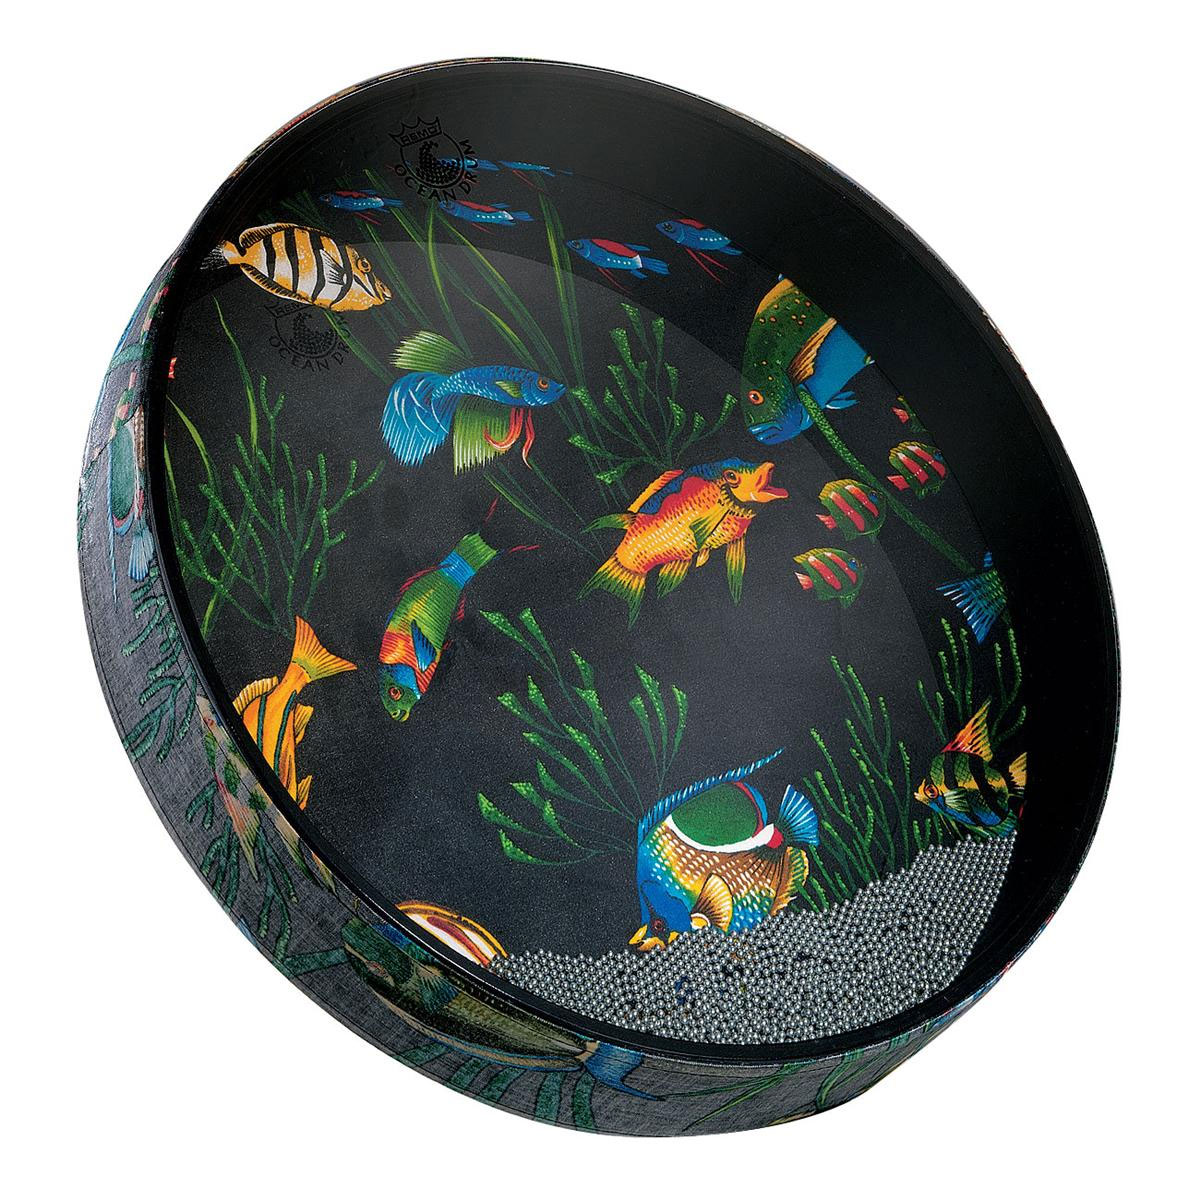 "Remo 2.5"" x 12"" Ocean Drum with Fish Graphic"